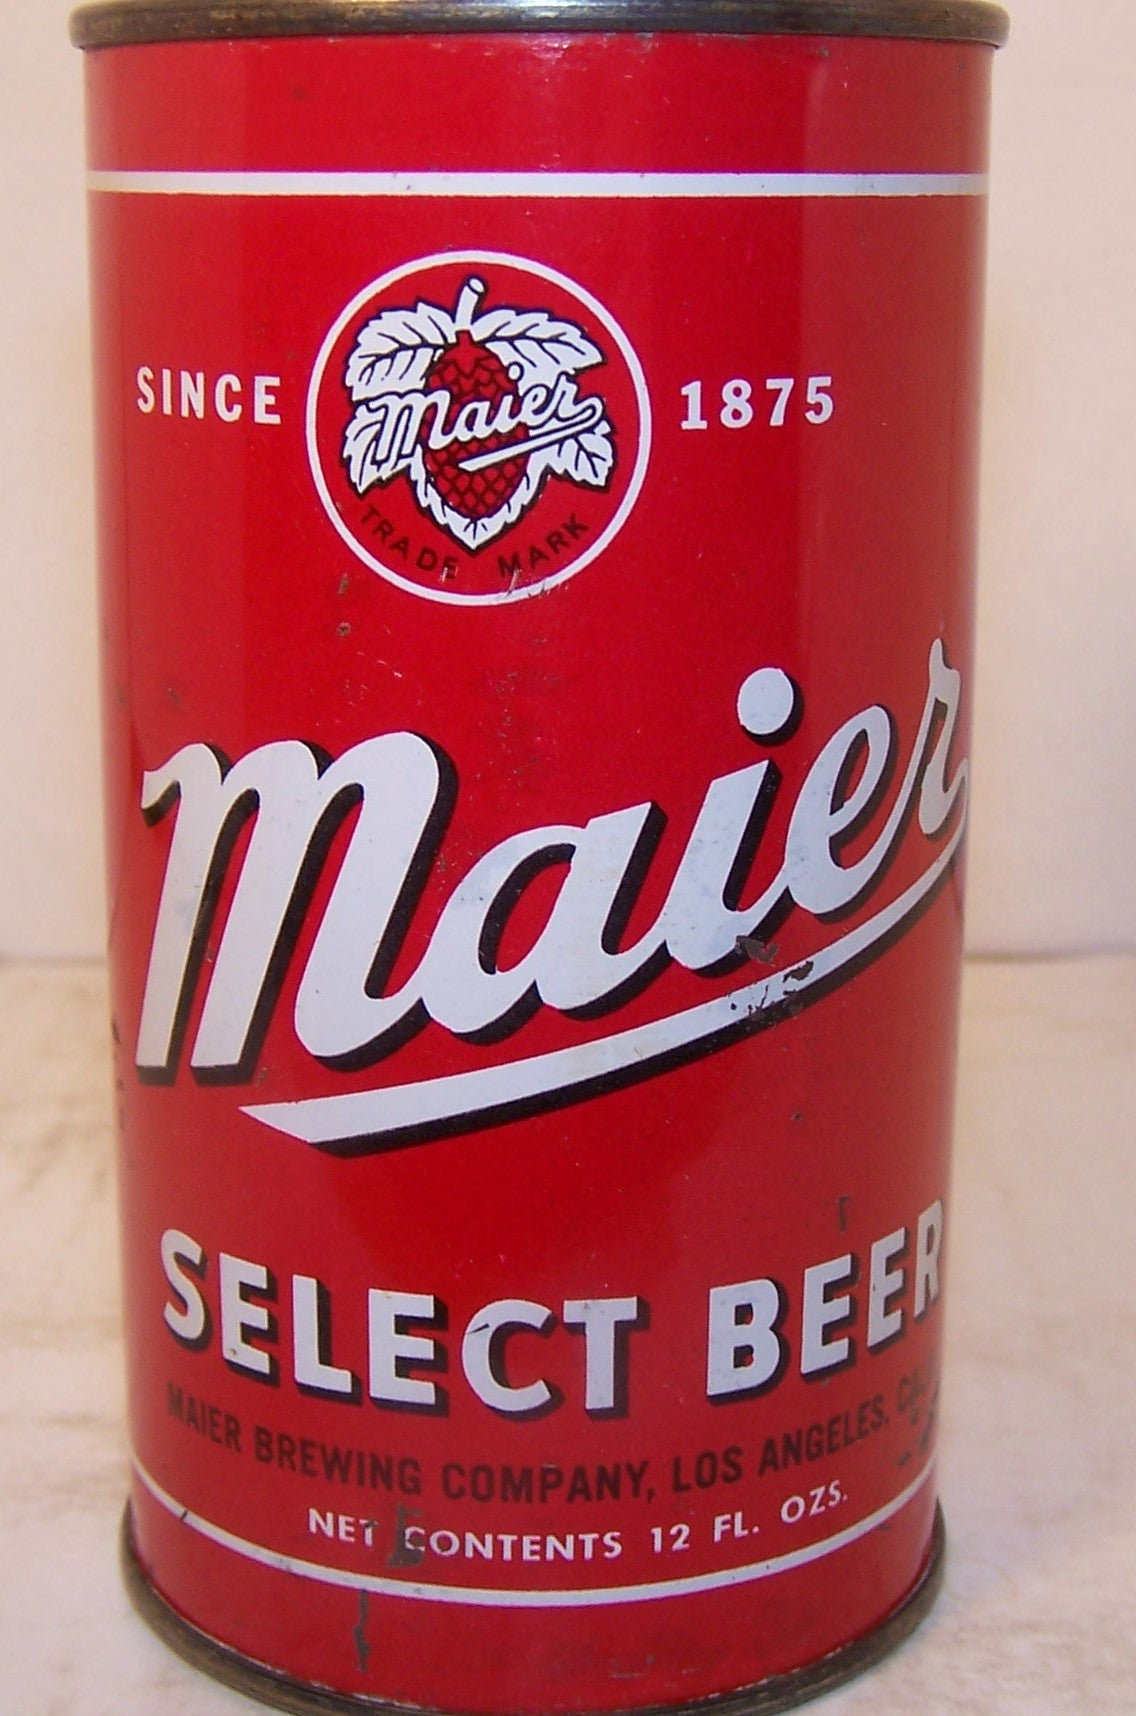 Maier Select Beer, USBC 94-13, Grade 1/1- Sold 9/2/15